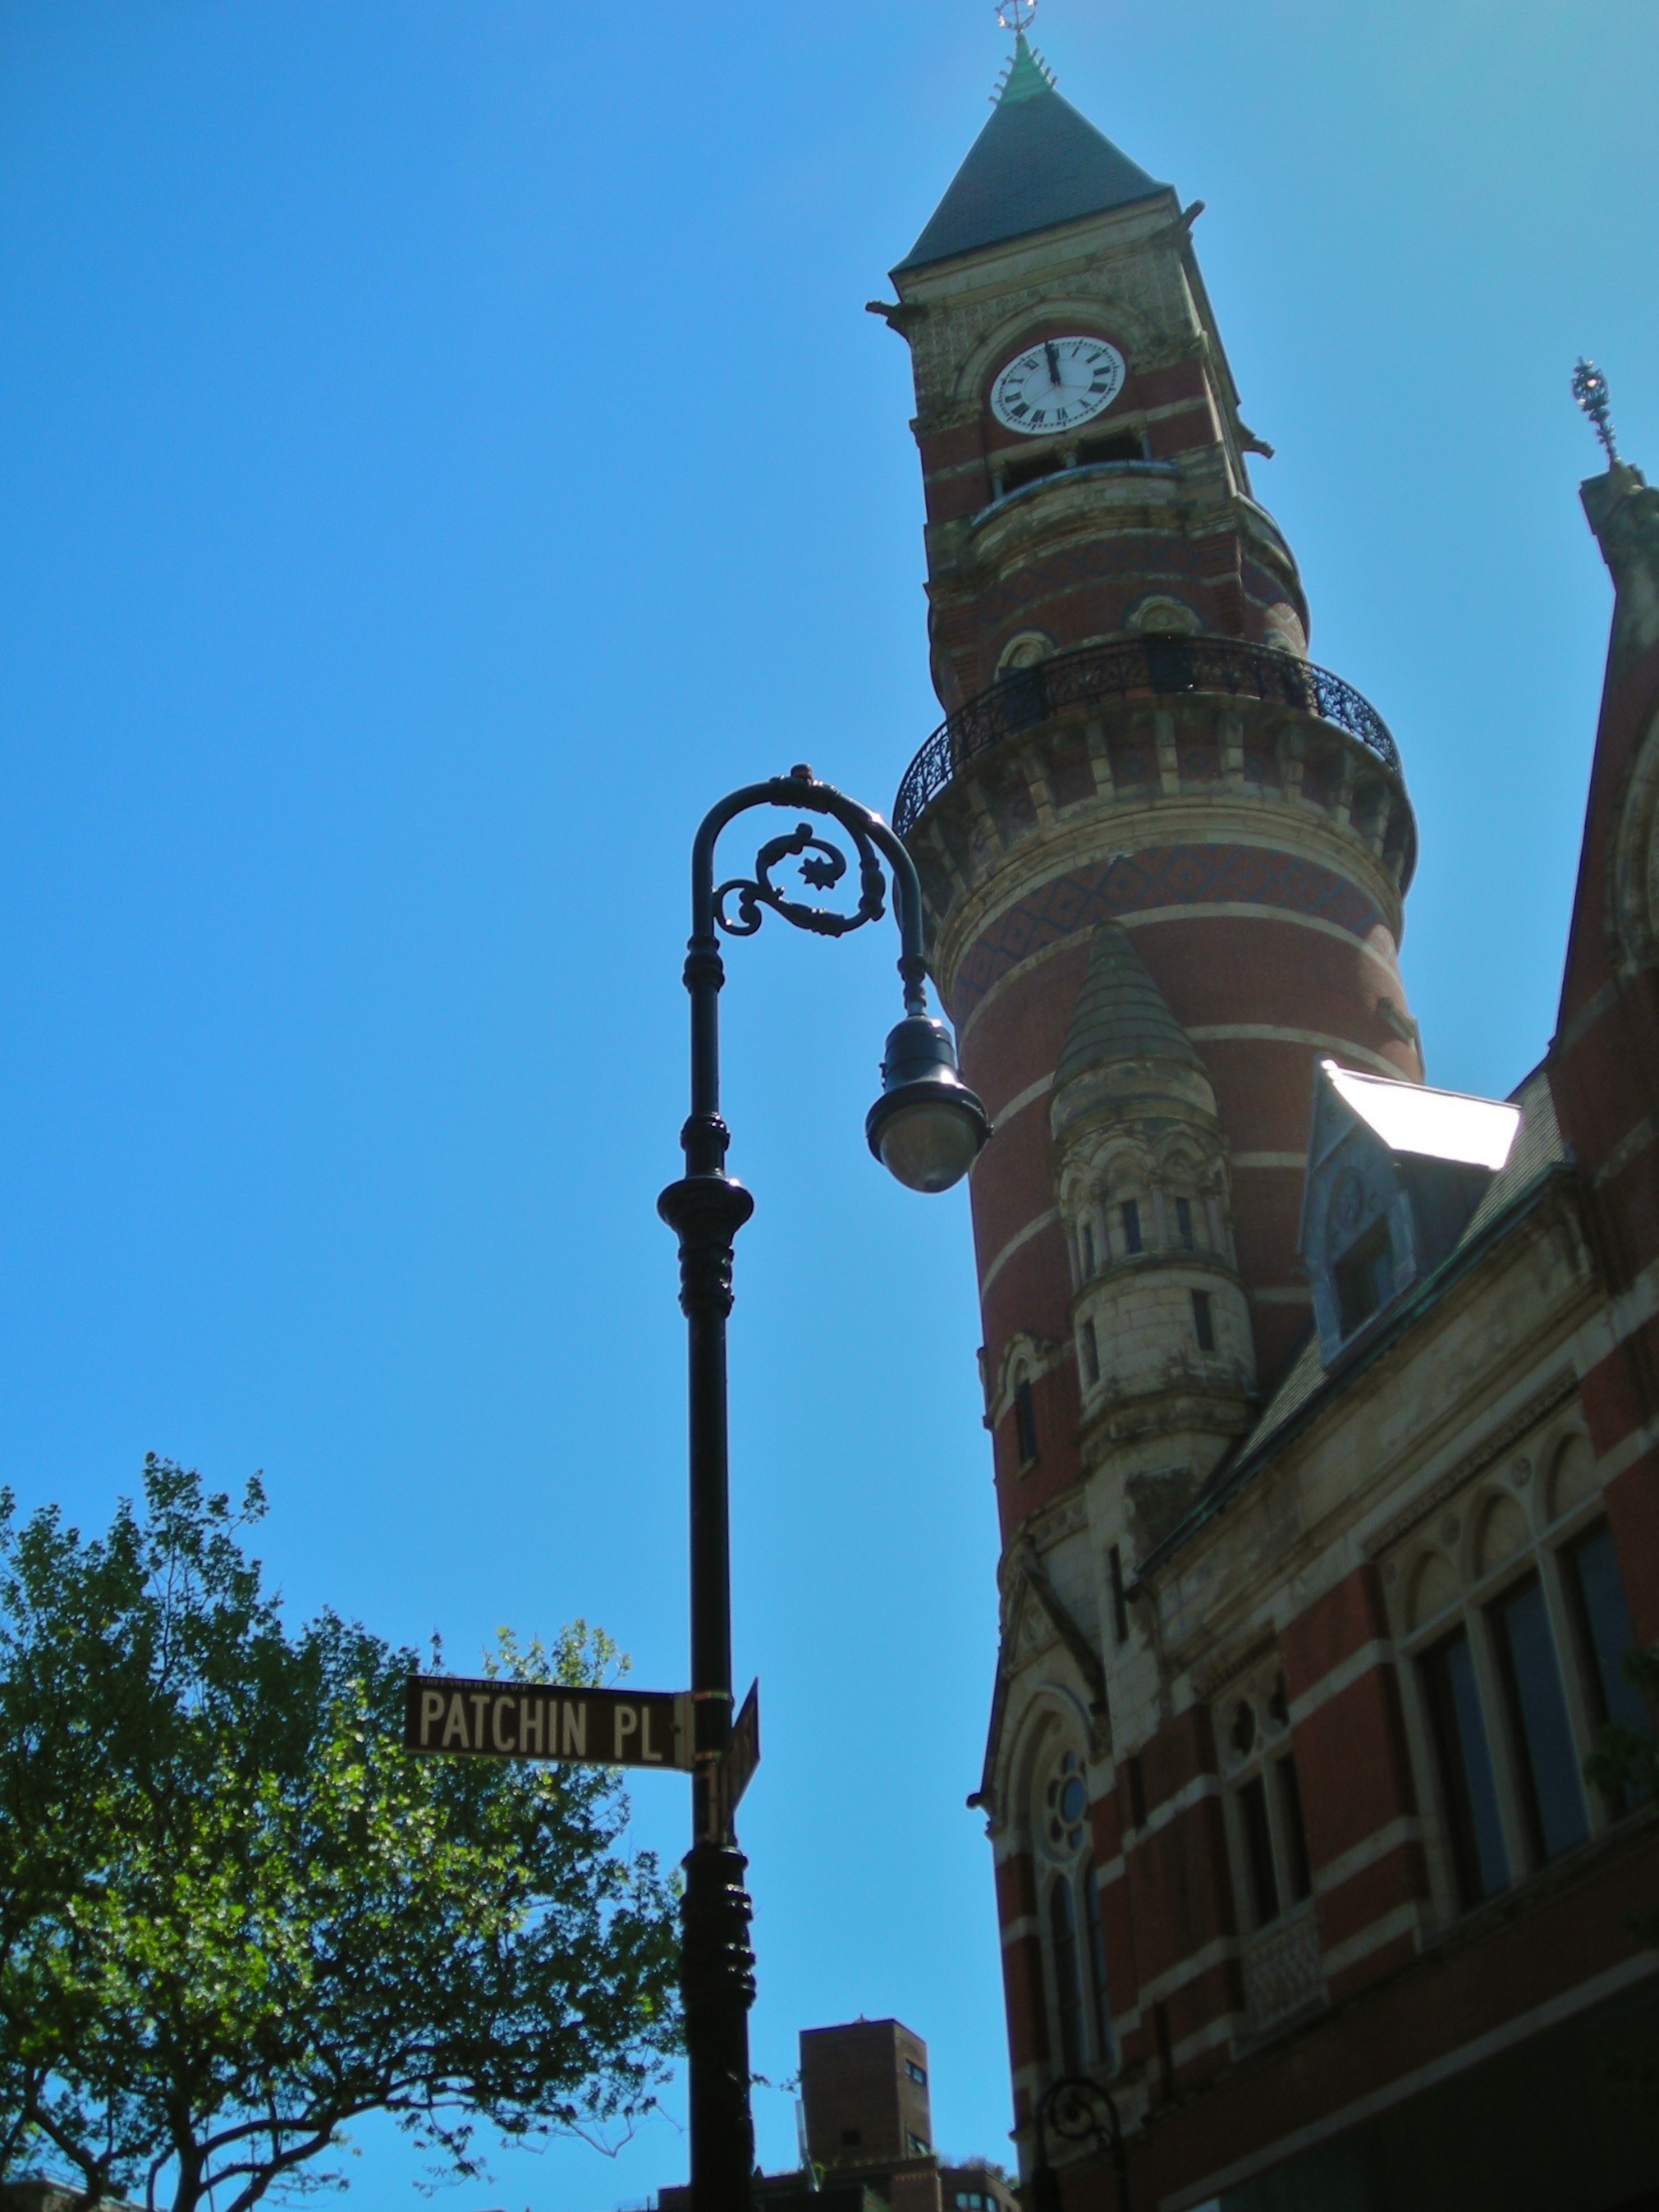 Patchin Place and the Clock Tower